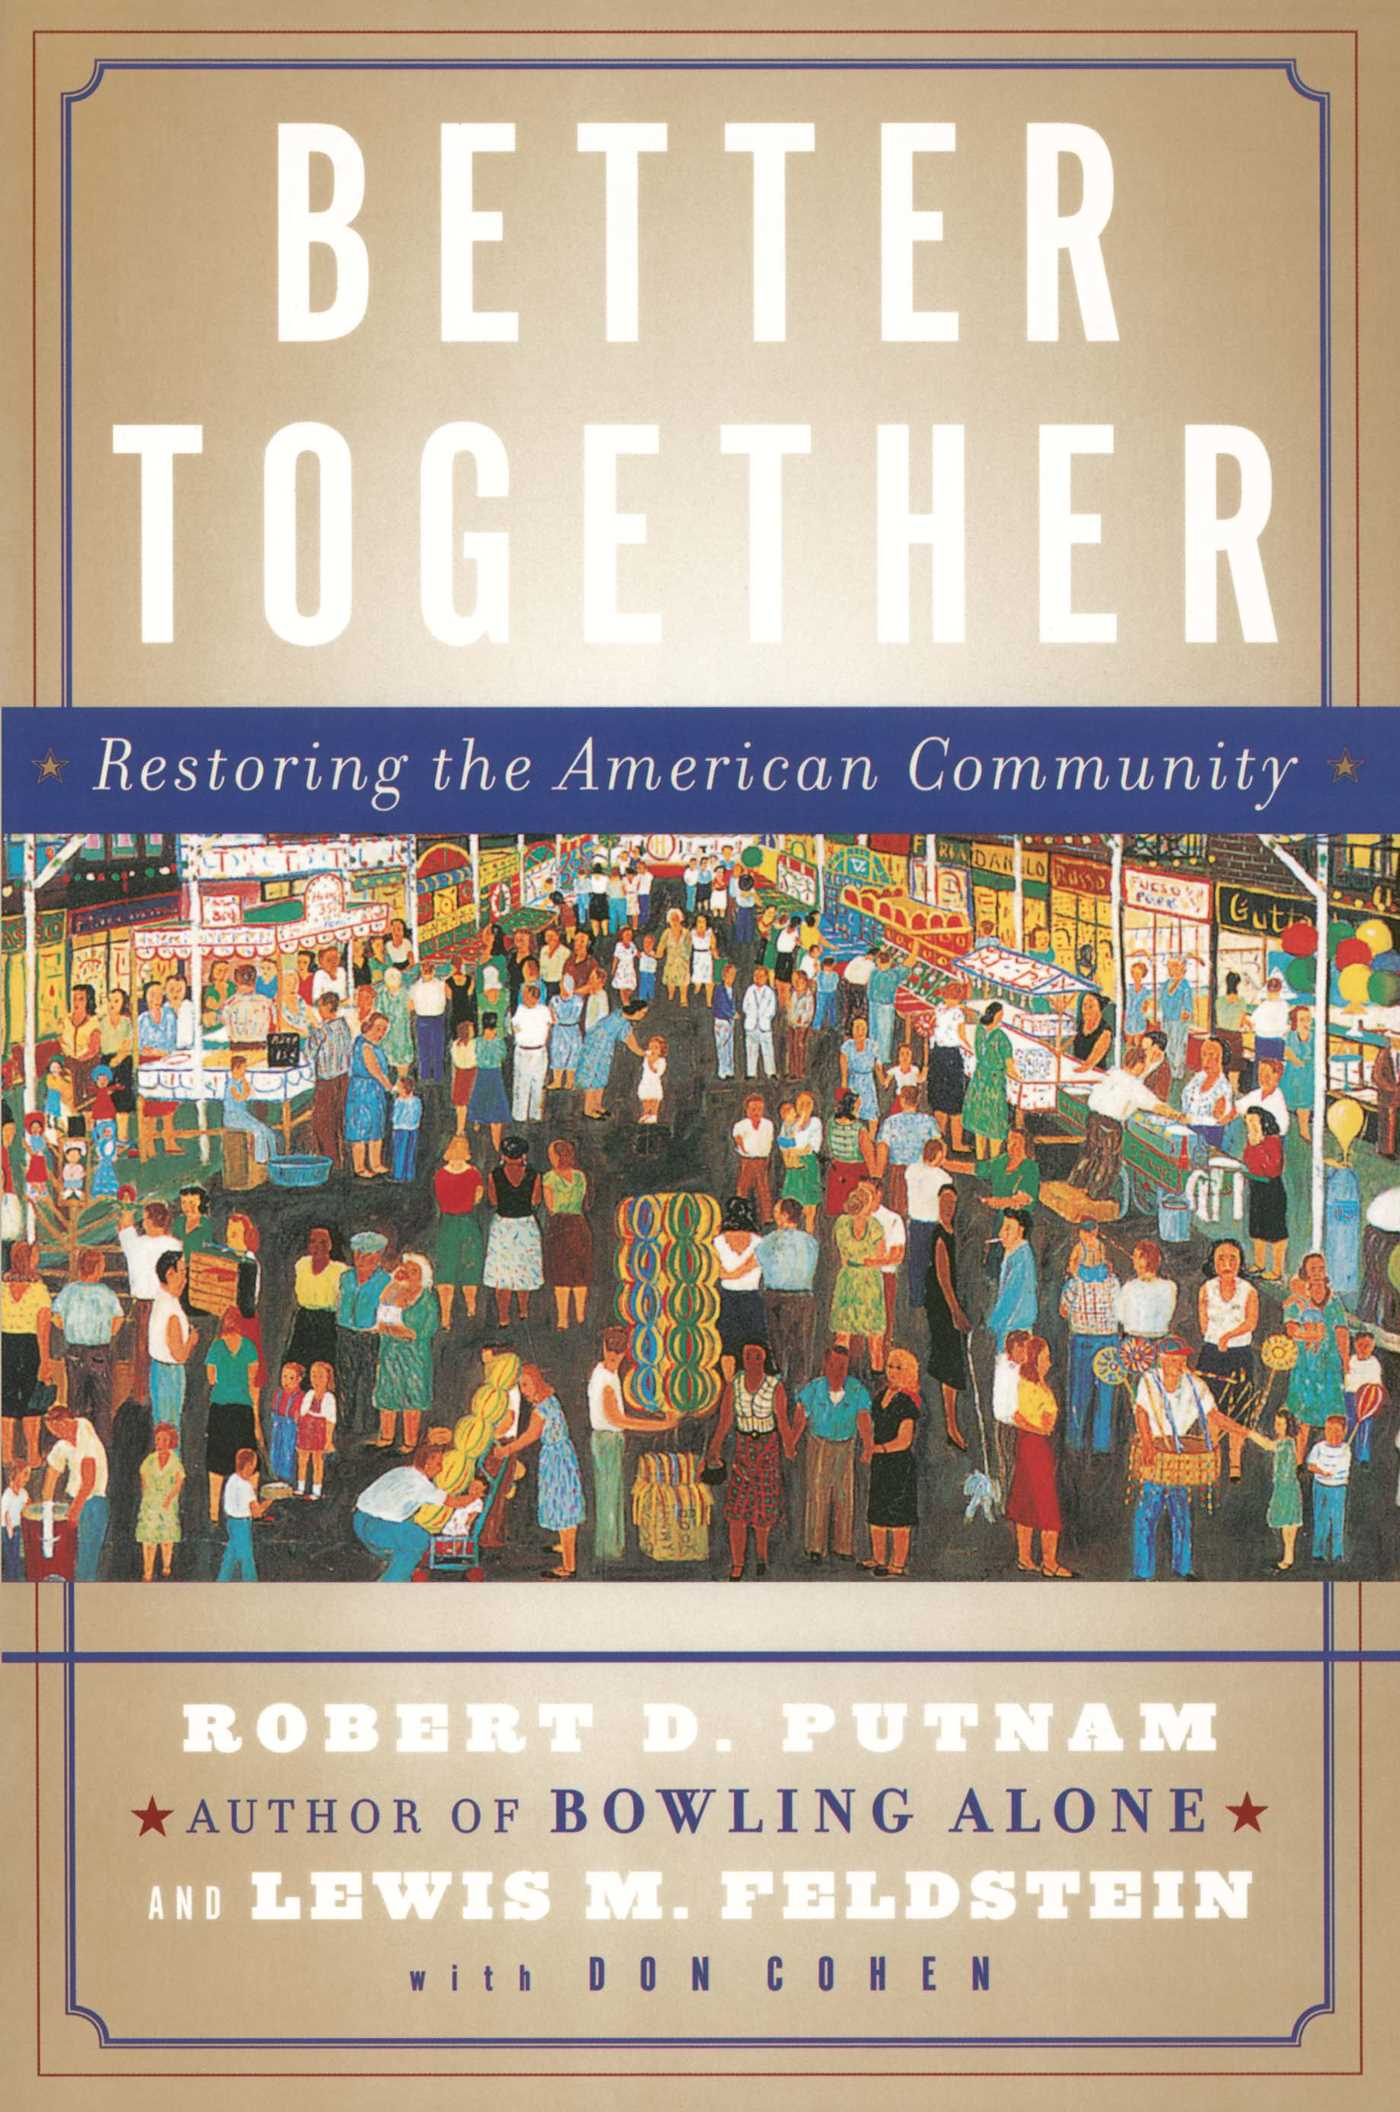 bowling alone essay essay why i want to be was also top schools in  better together book by robert d putnam lewis feldstein better together 9780743235471 hr word essay topic